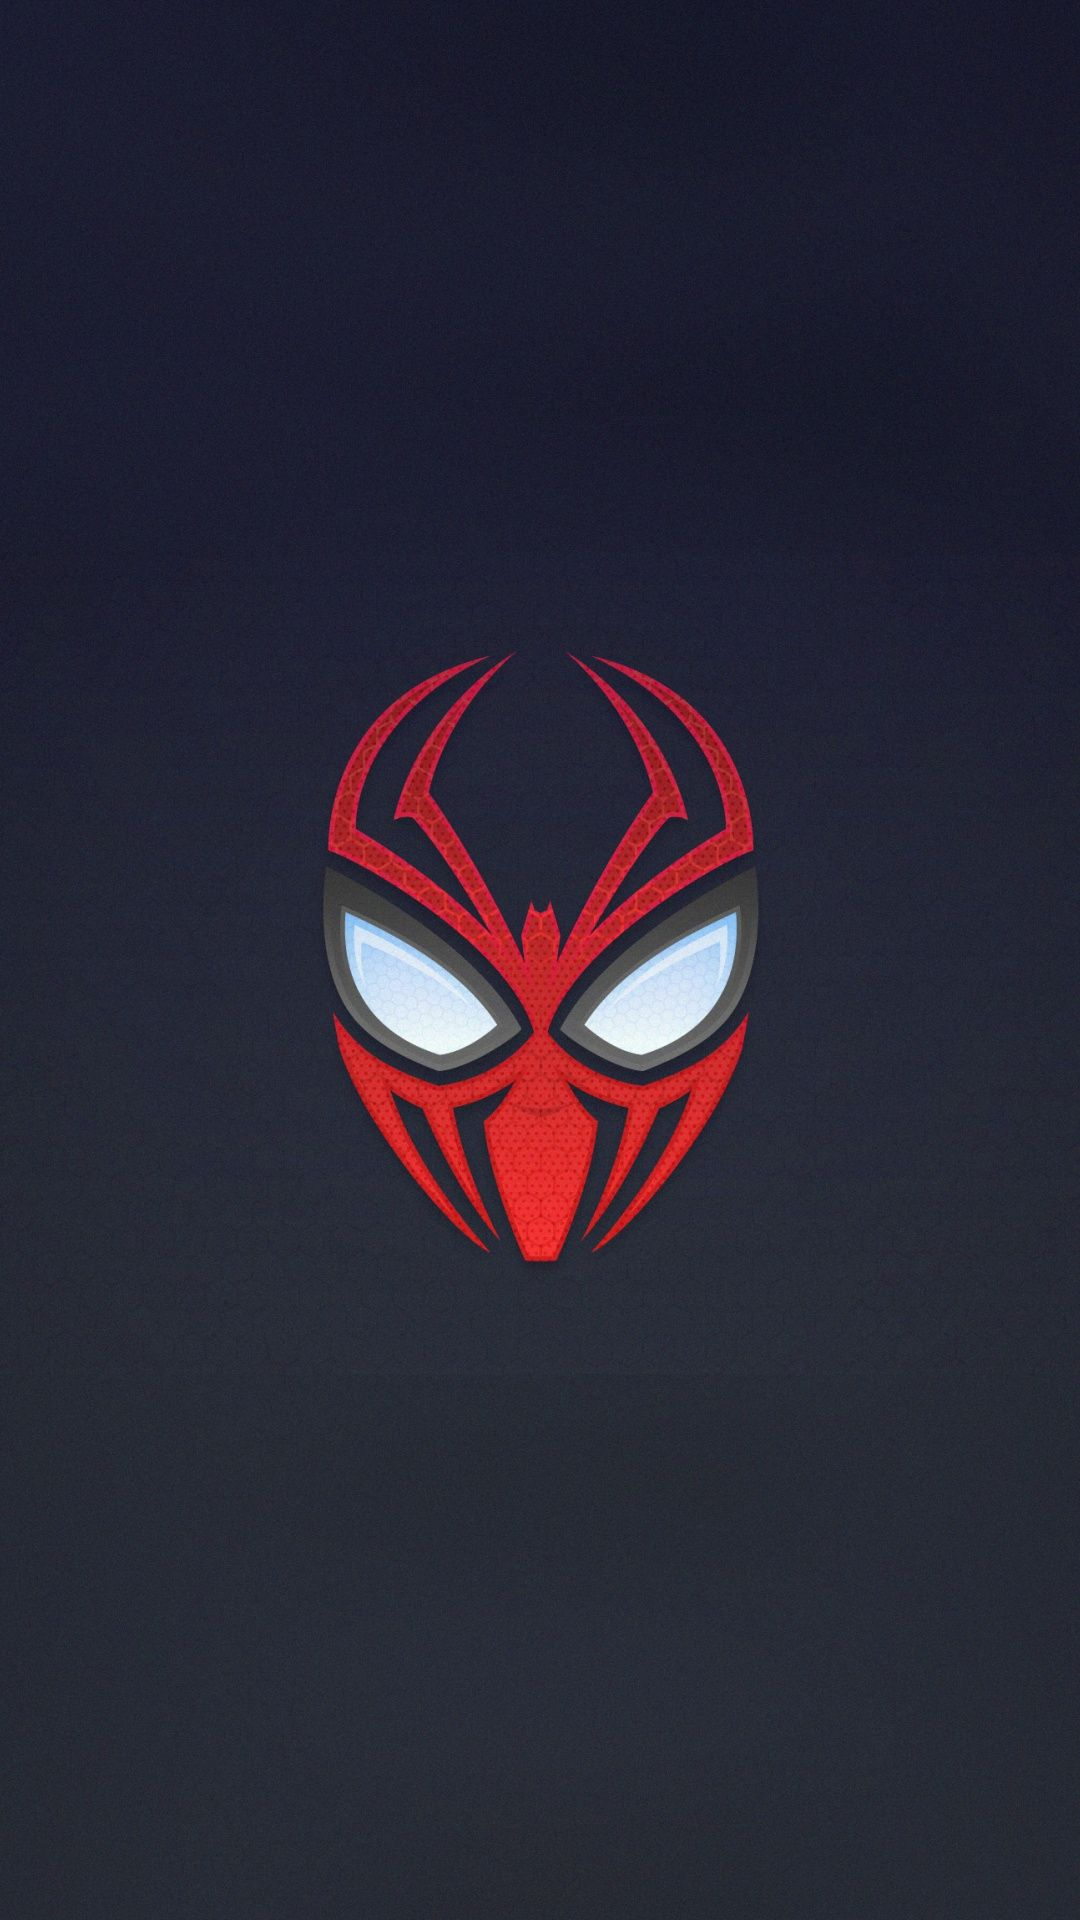 Spider Man Logo Artwork Wallpaper Spiderman Marvel Spiderman